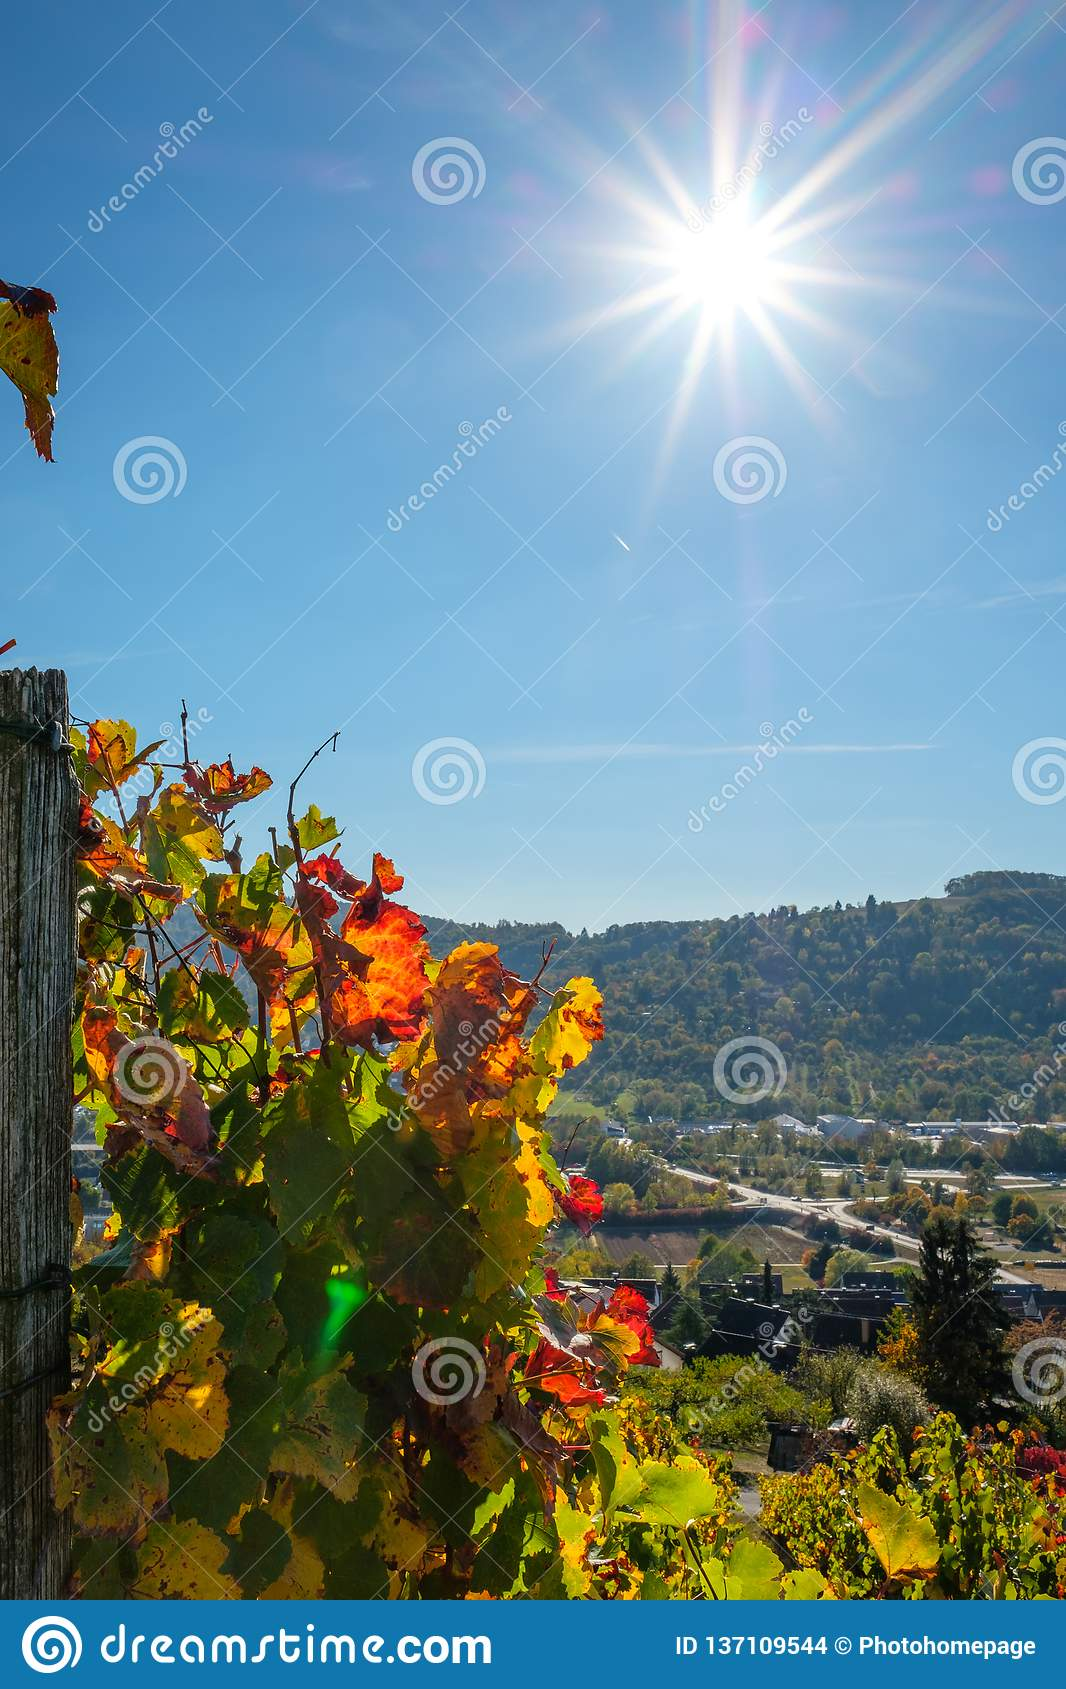 Vineyard with vinegrapes in autumn with sunbeams in the sky